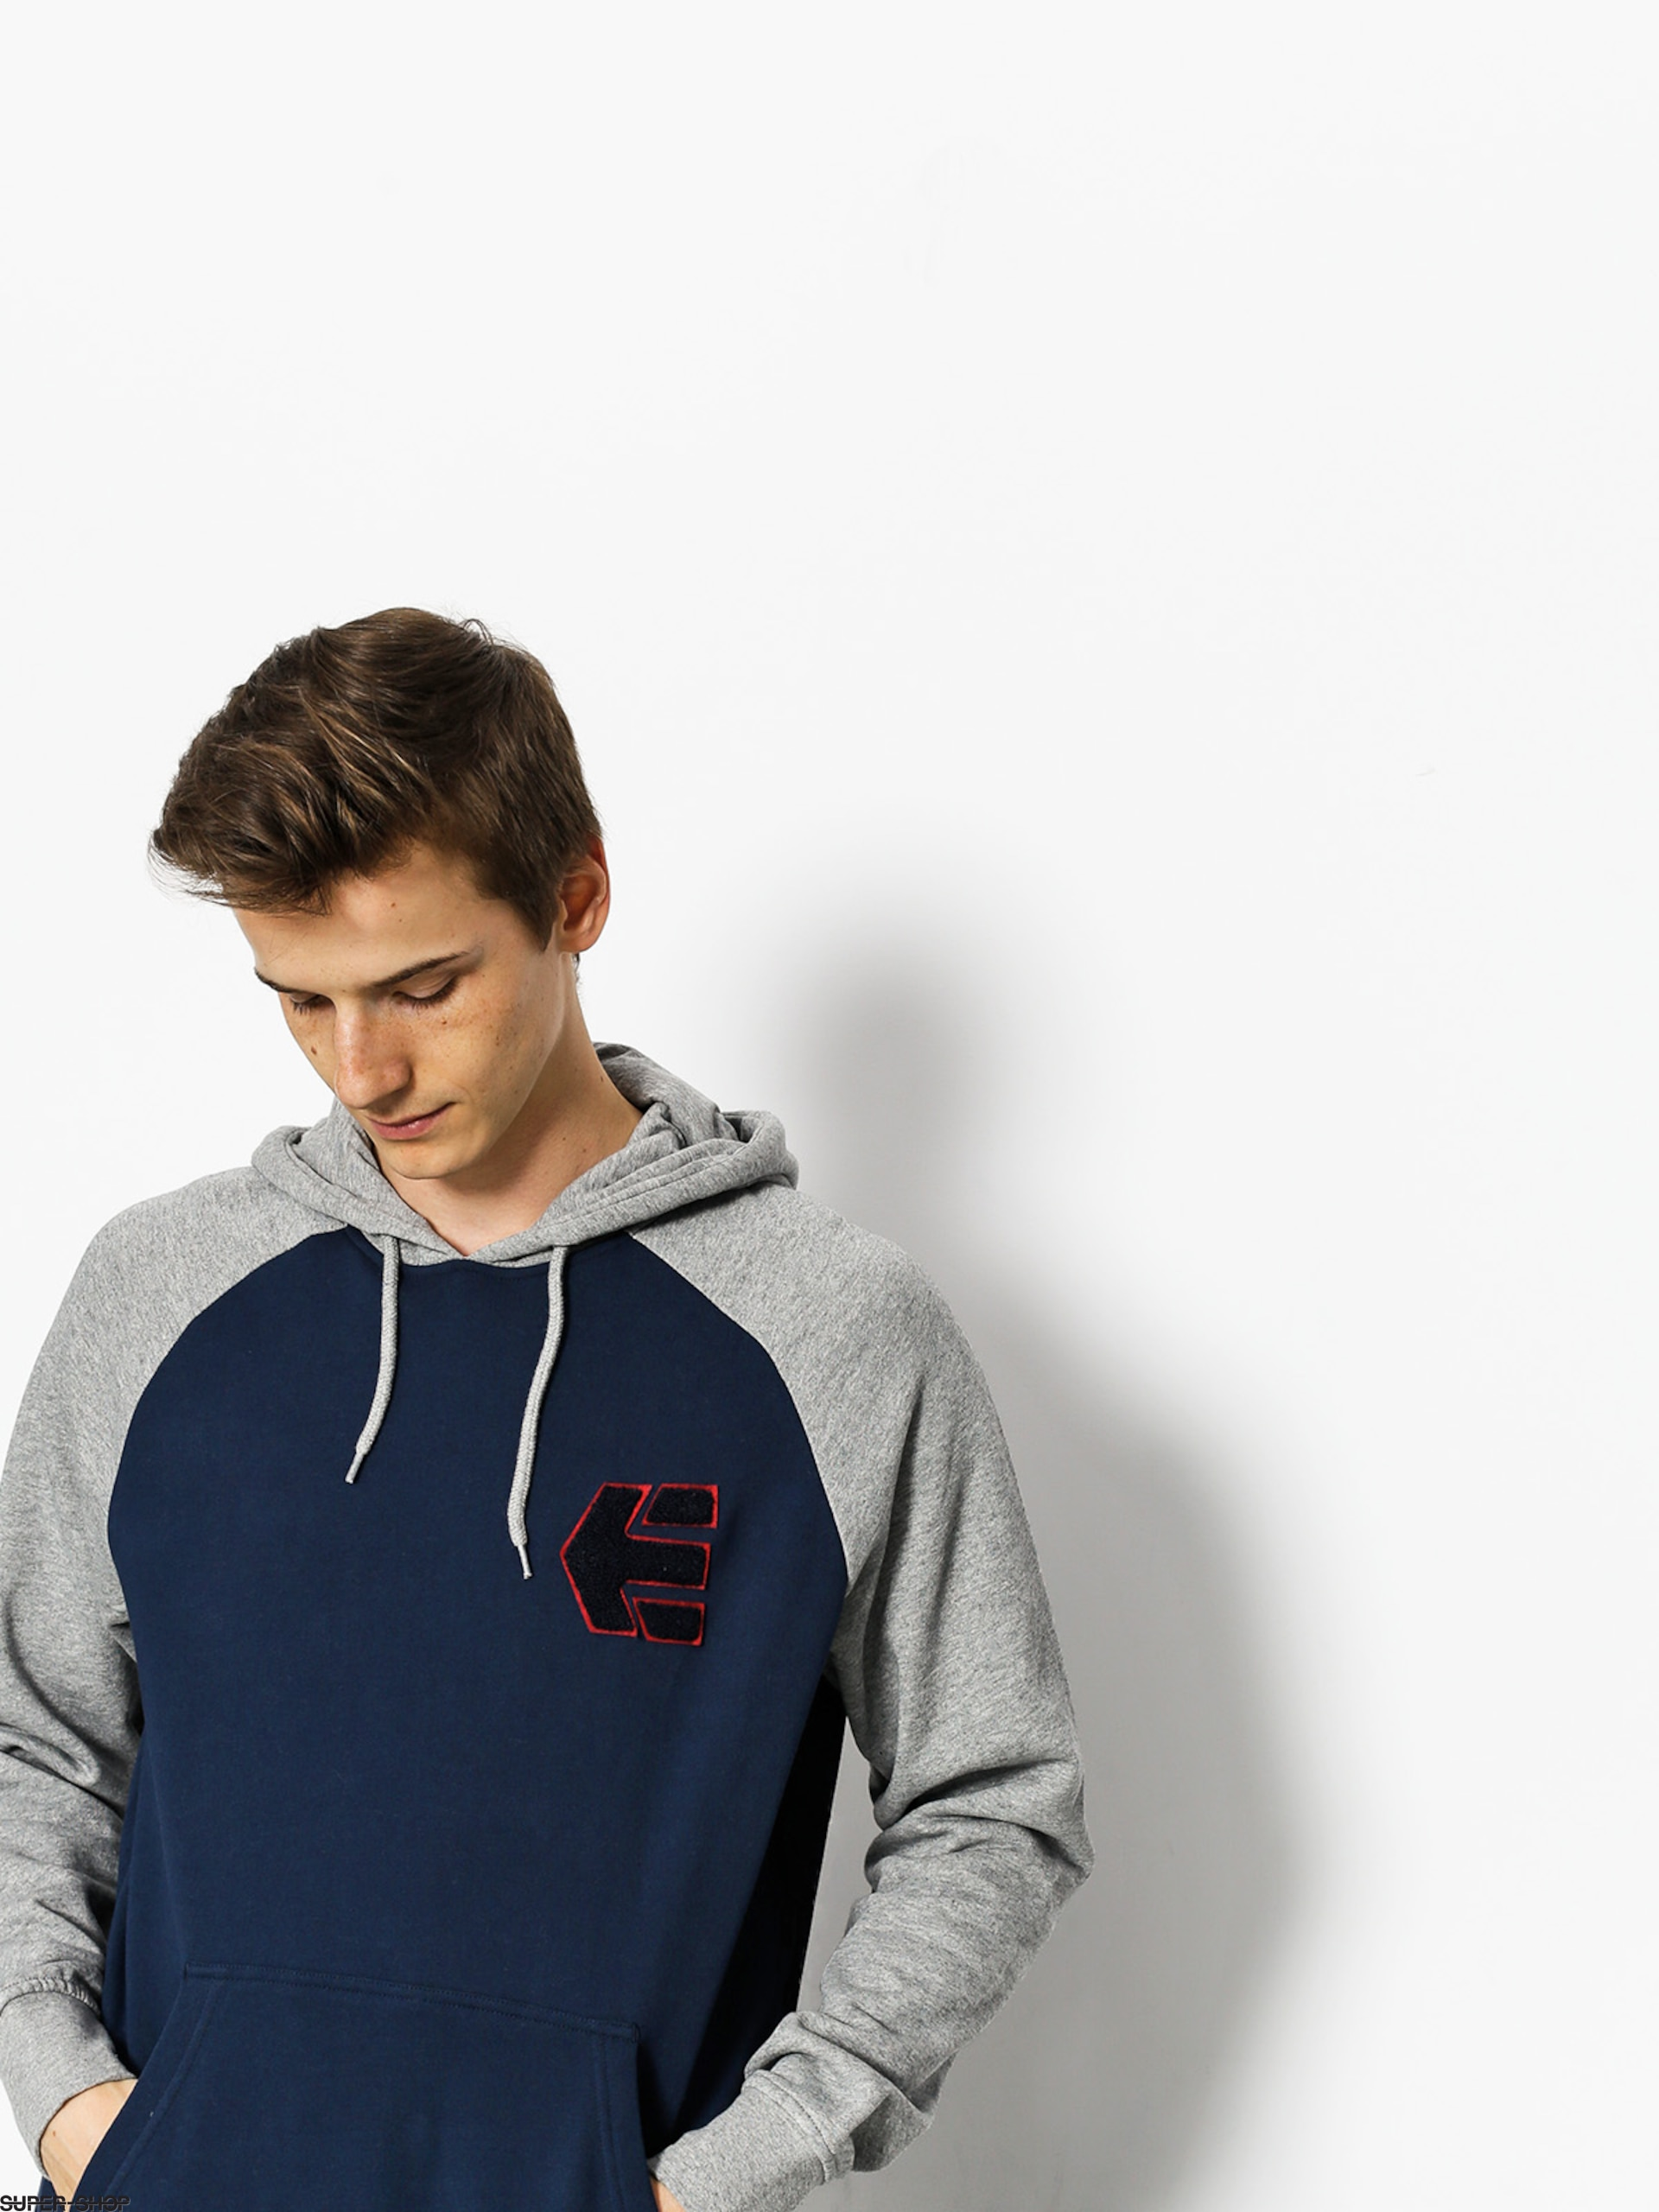 Etnies Hoody Breakers HD